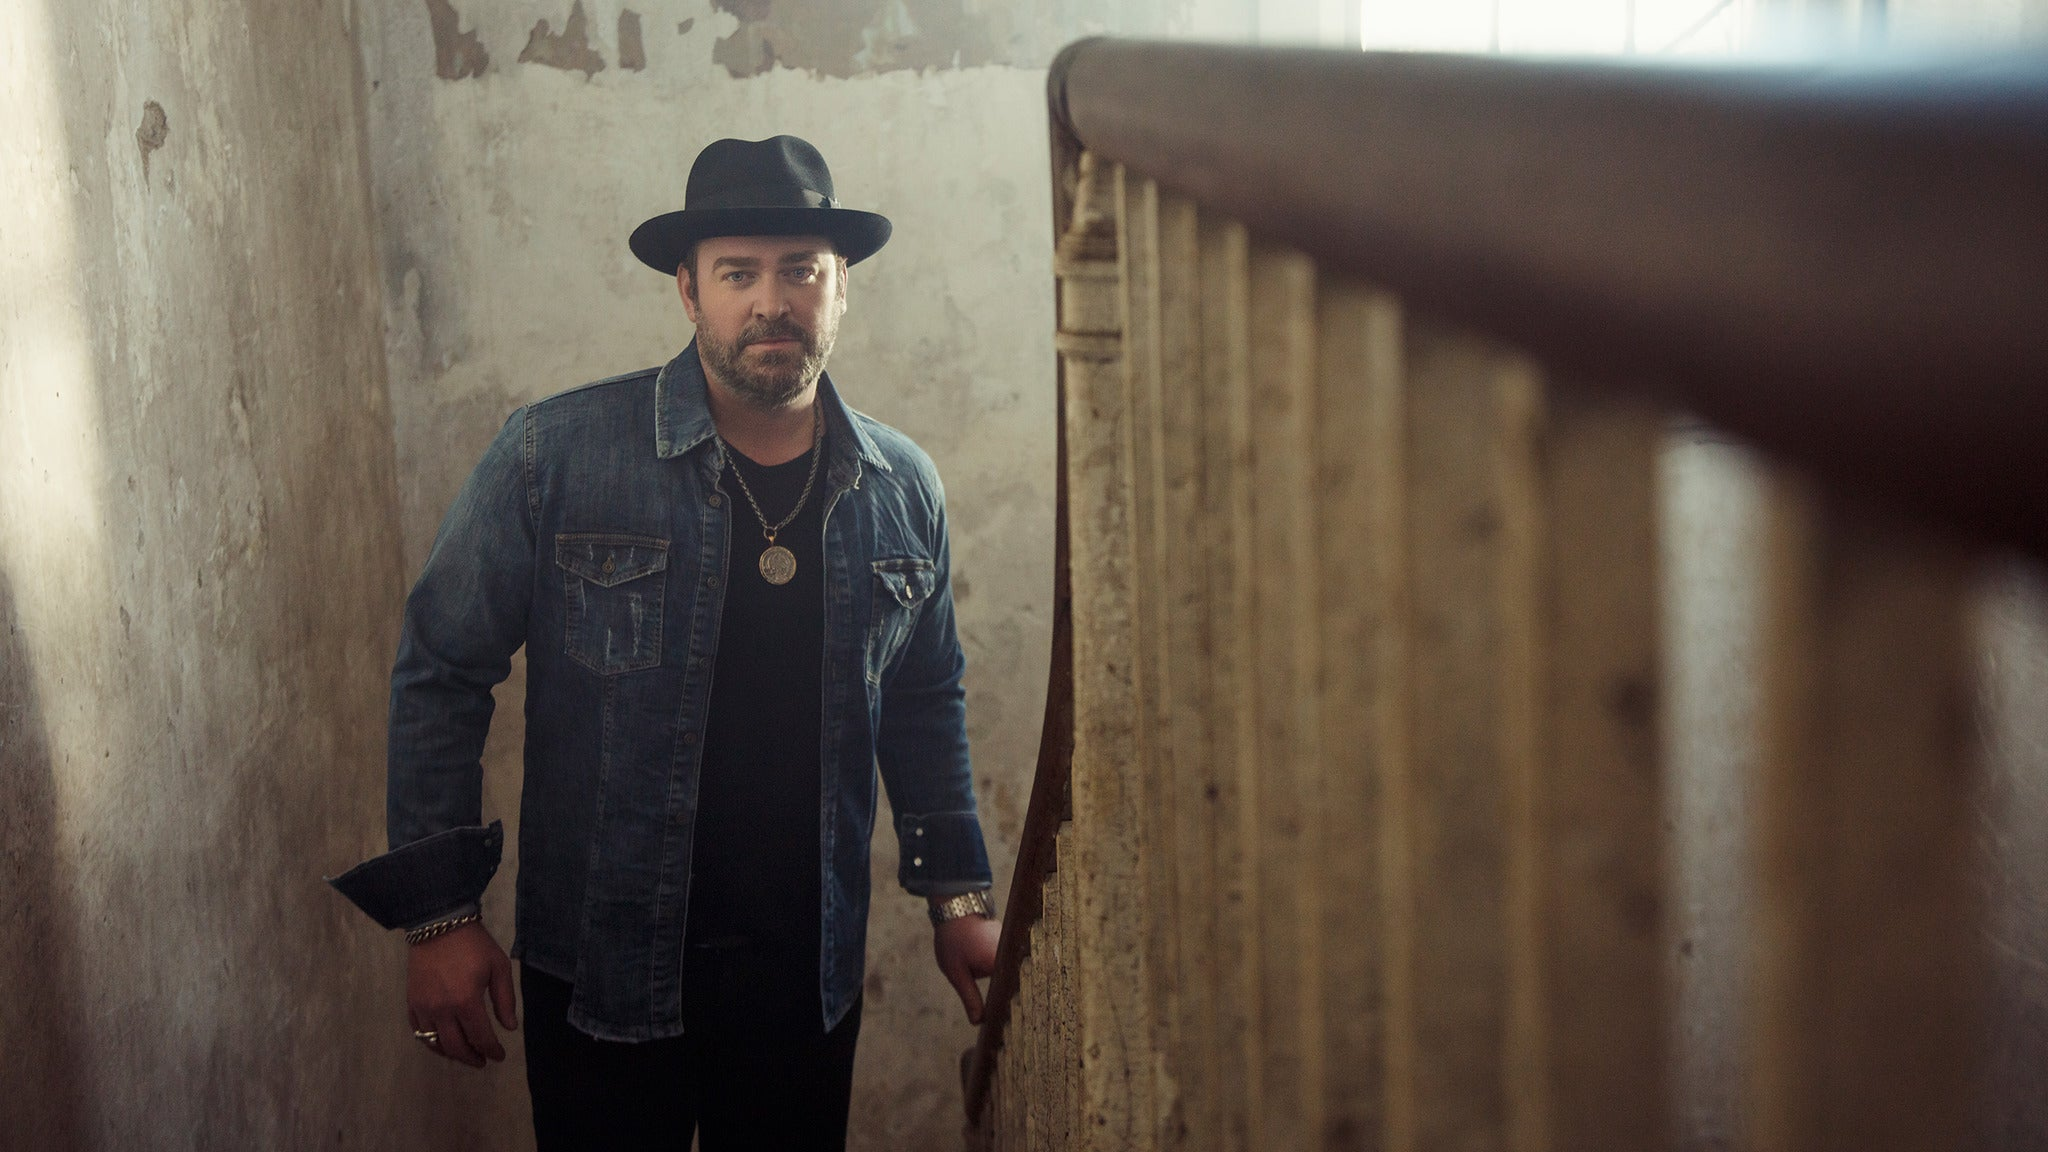 Premium Seating - Lee Brice presale code for early tickets in Camdenton